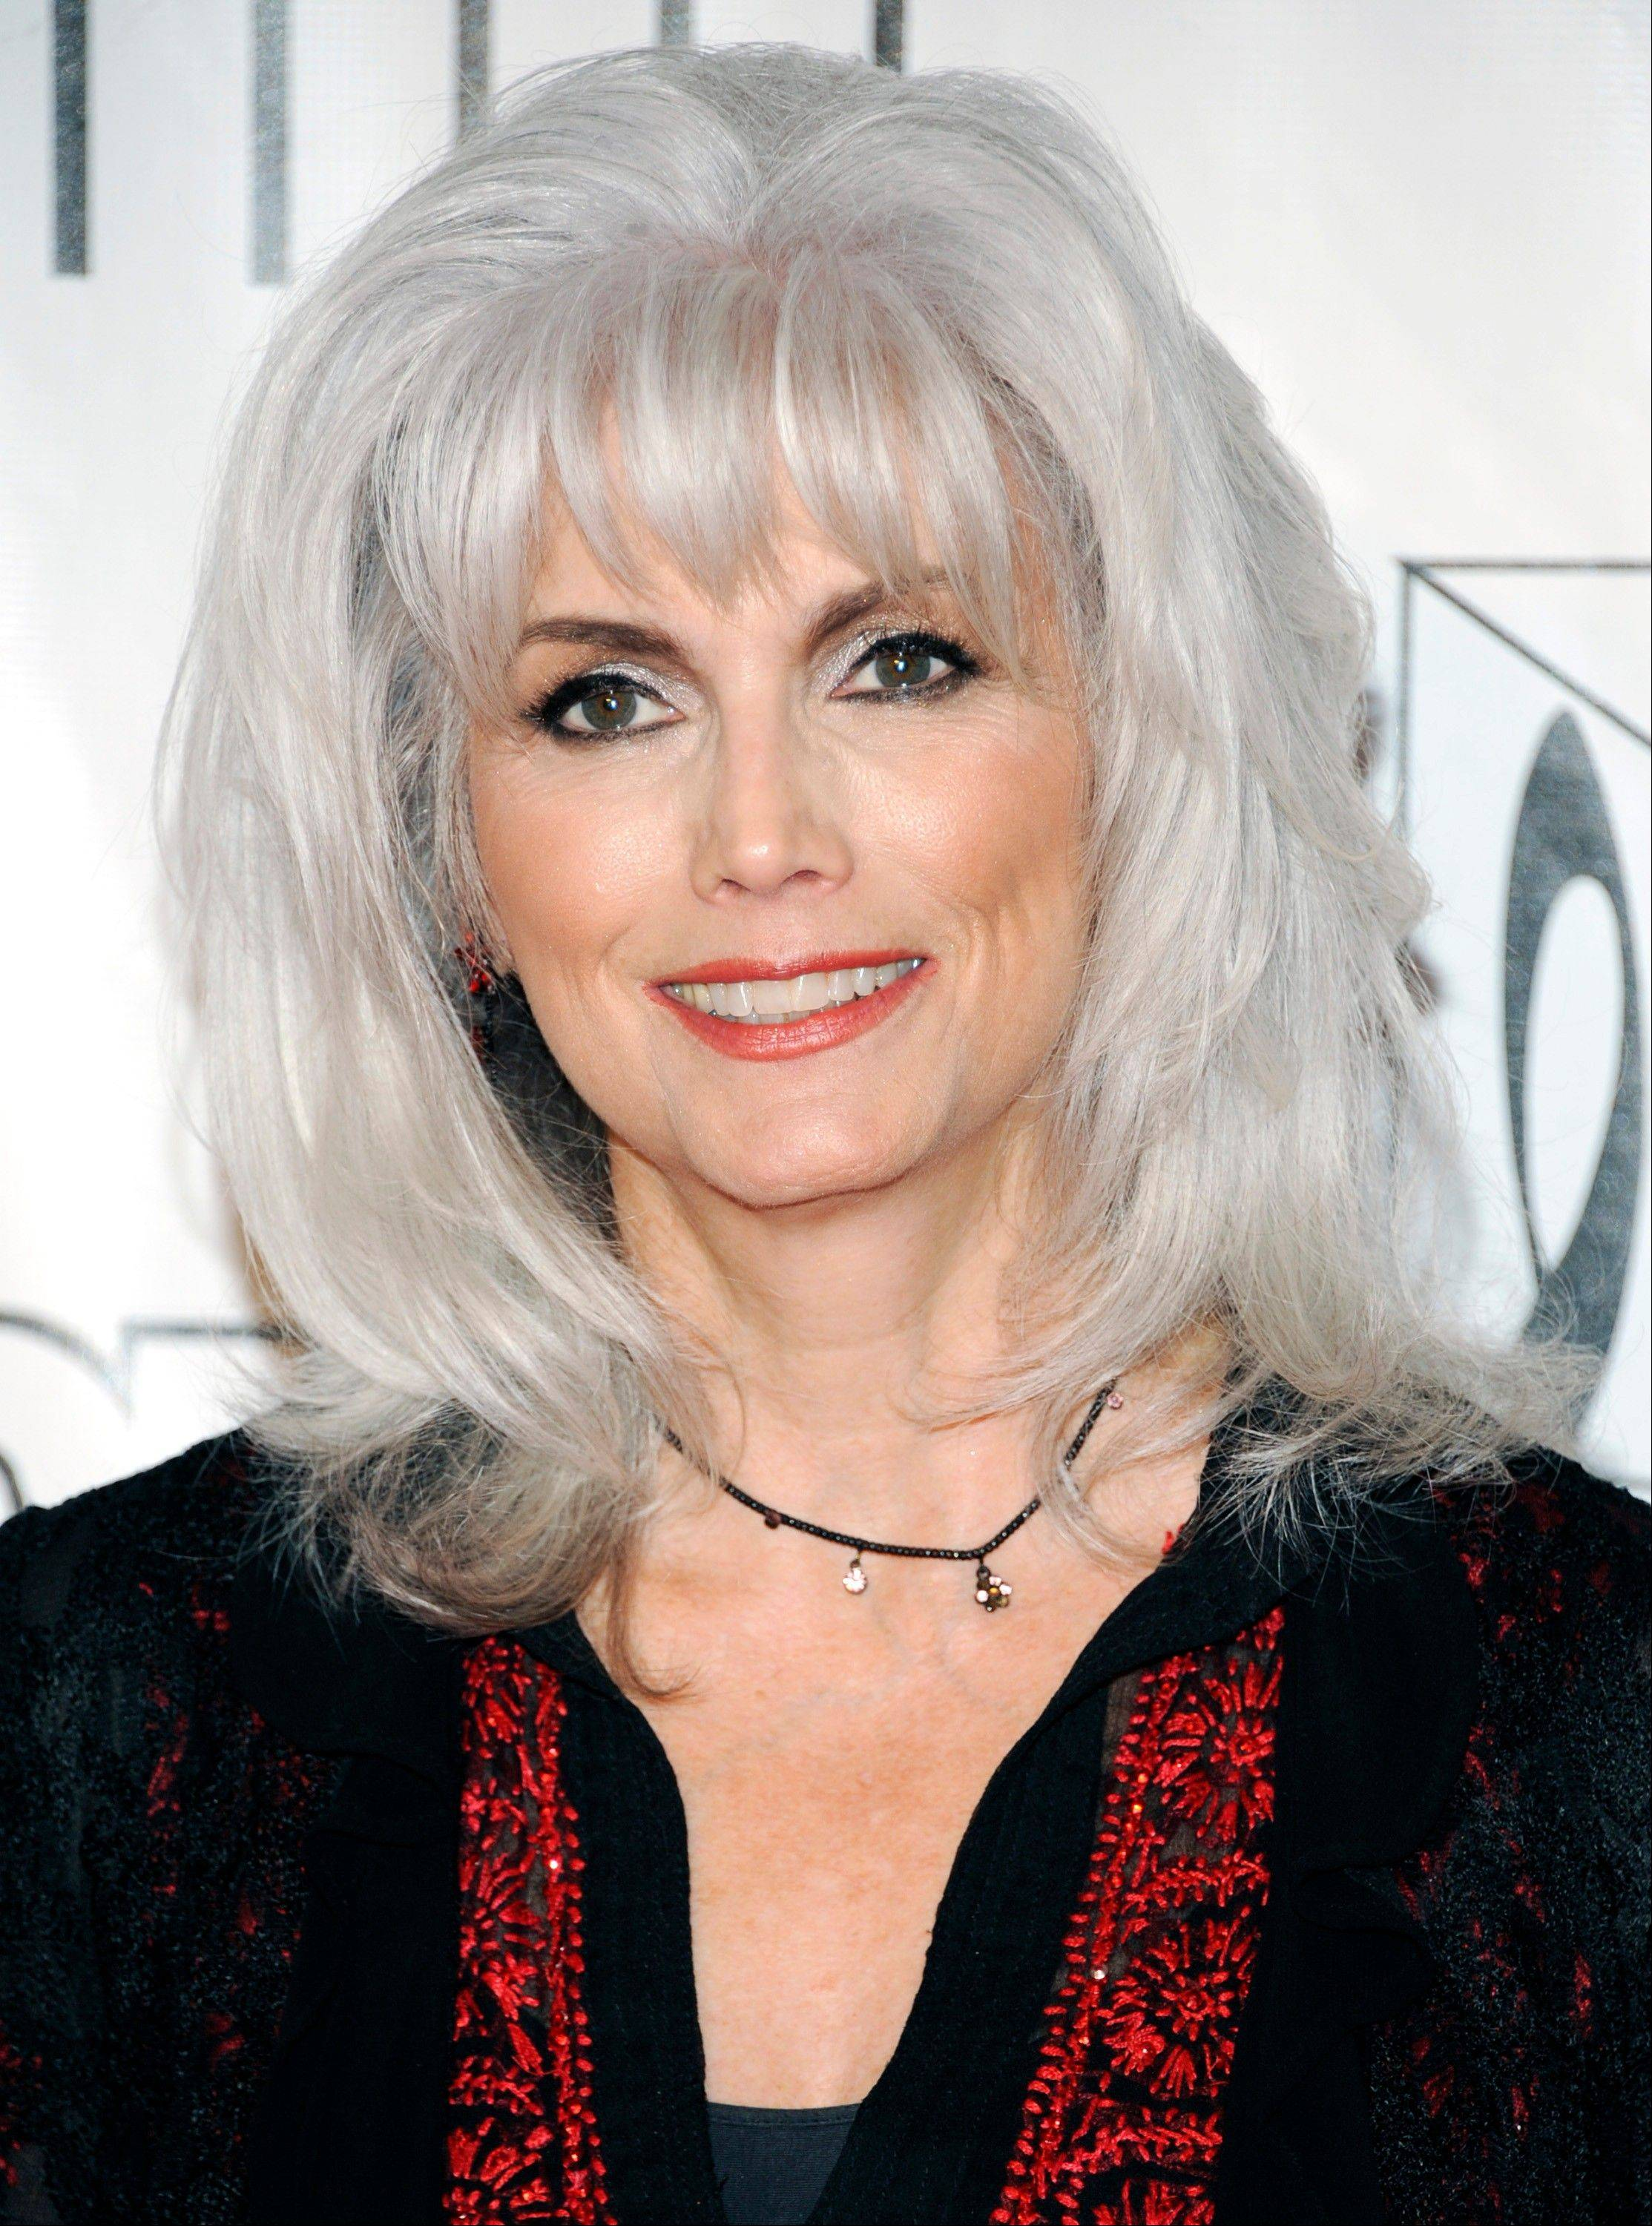 On Wednesday, prosecutors charged Emmylou Harris with misdemeanor hit-and-run for leaving an Oct. 1 accident on a Los Angeles freeway without exchanging info with another driver.